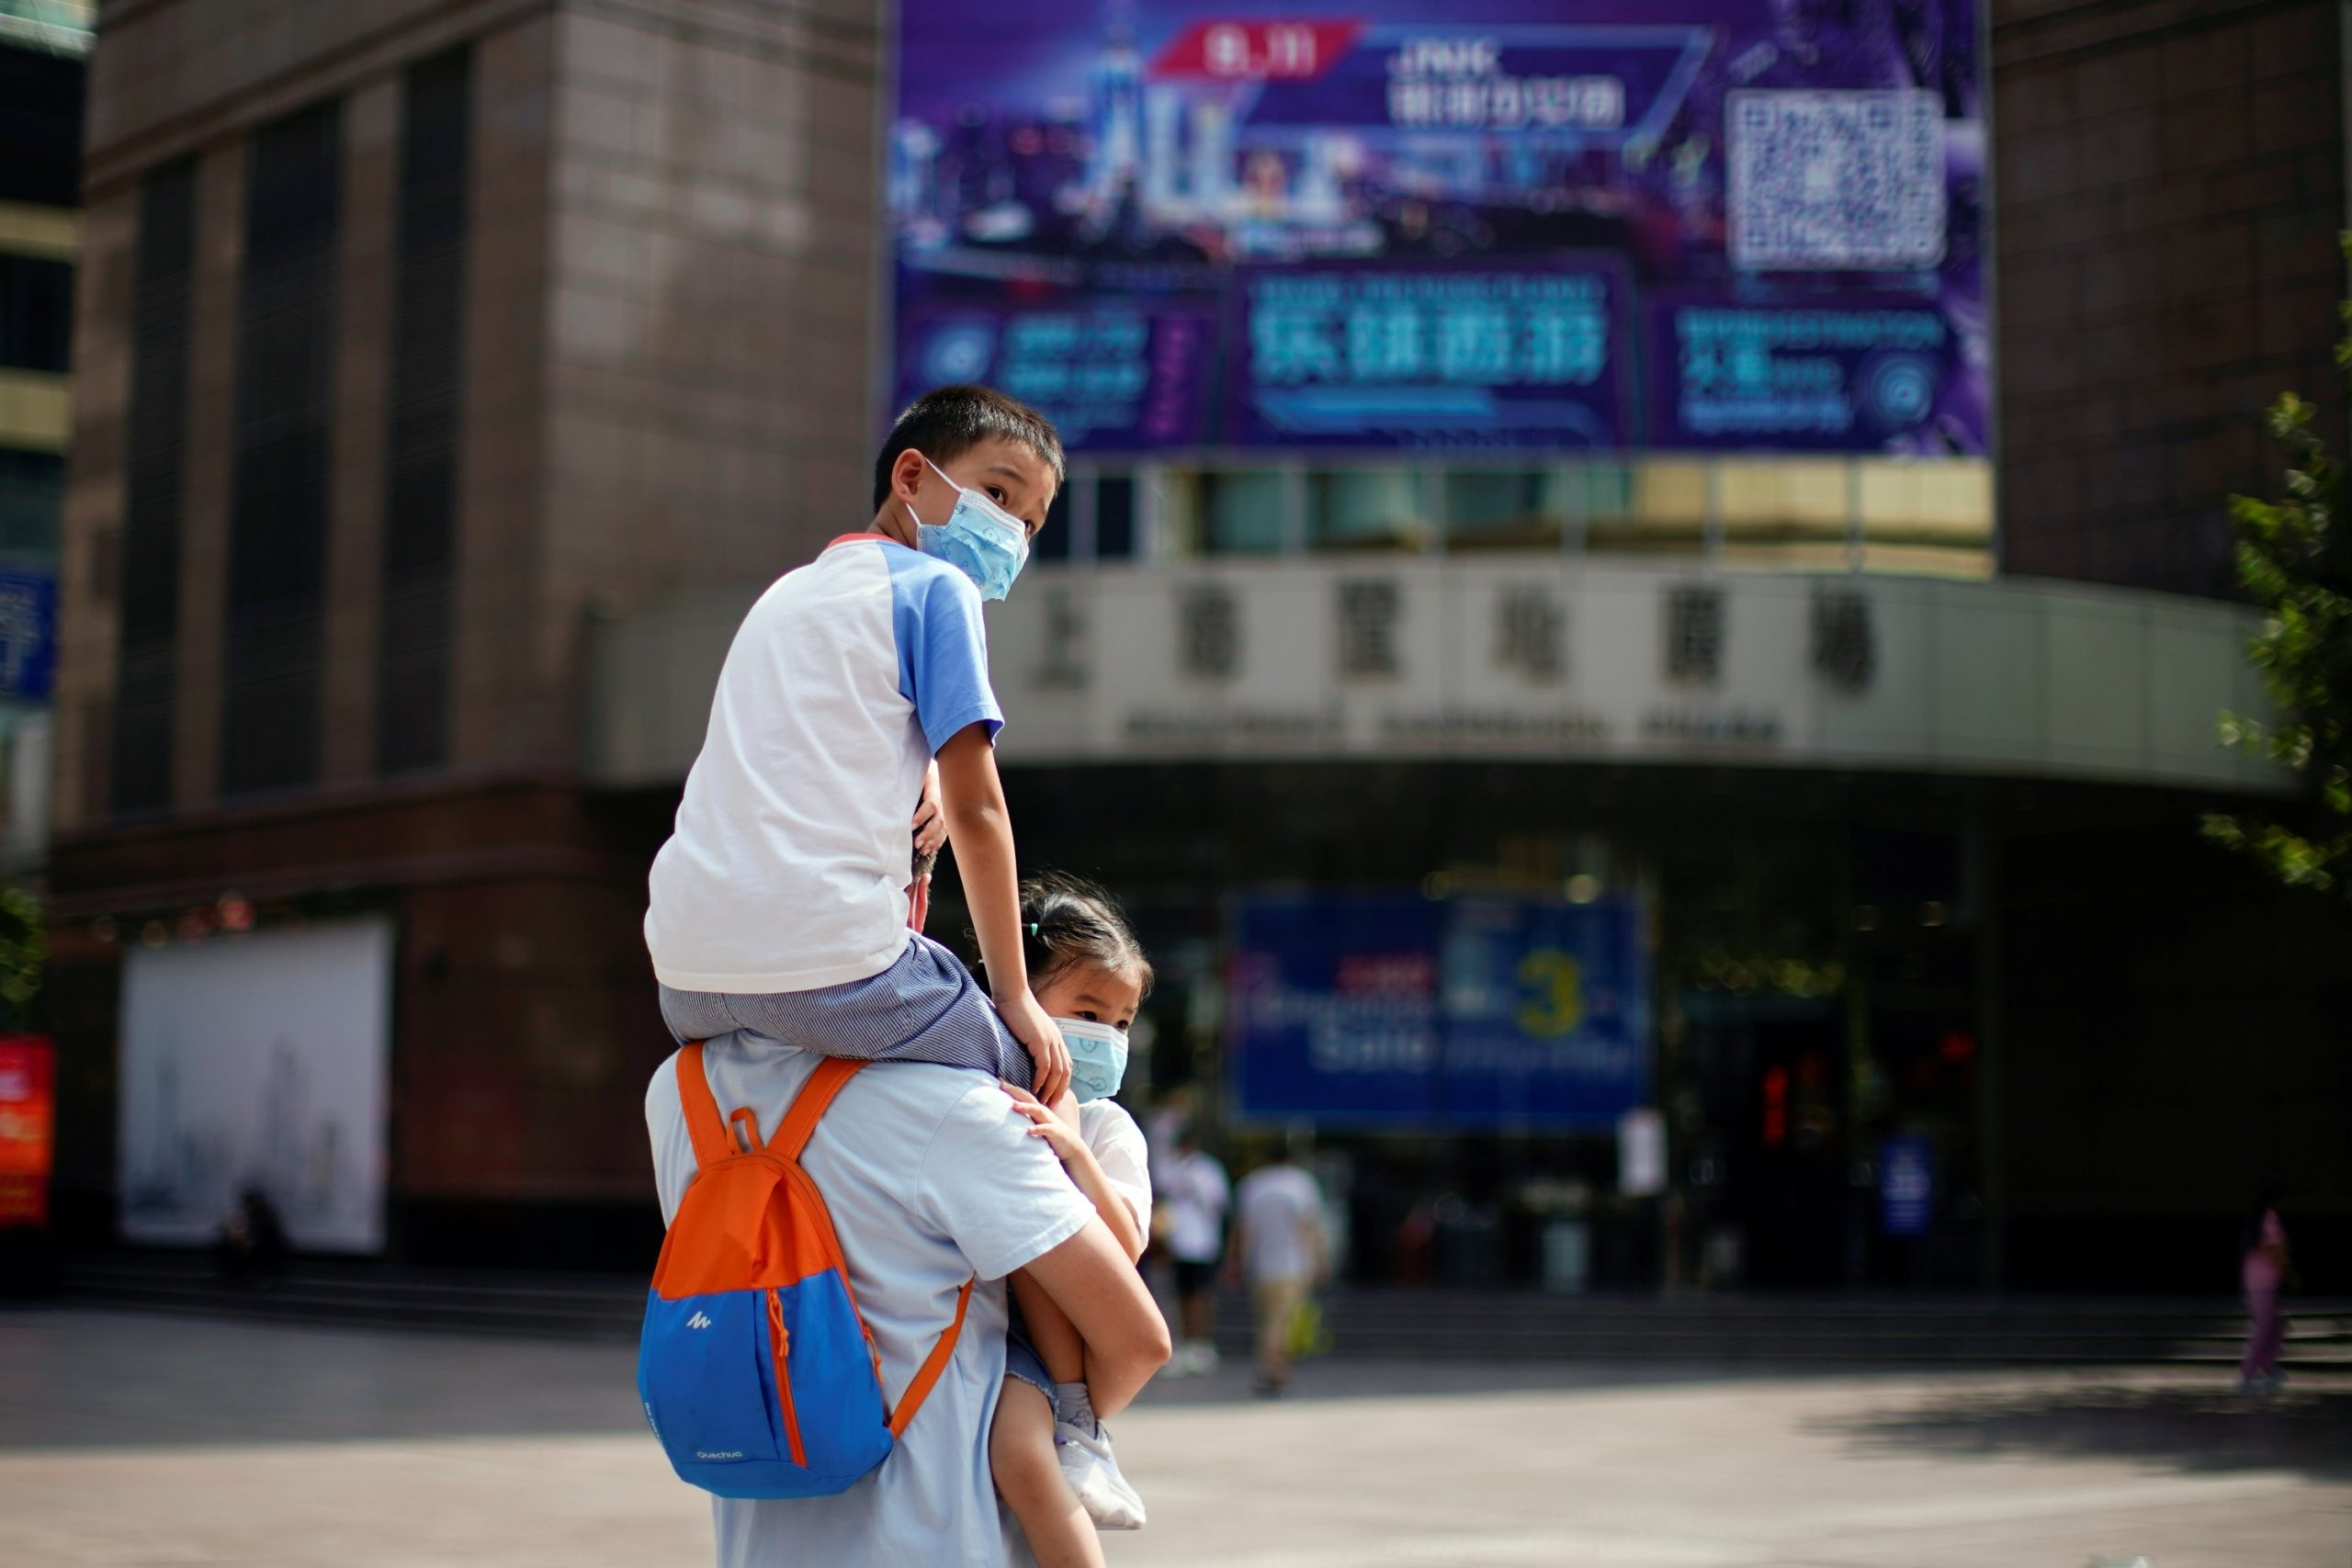 Season of crackdown: Playtime nearly over for China's young gamers